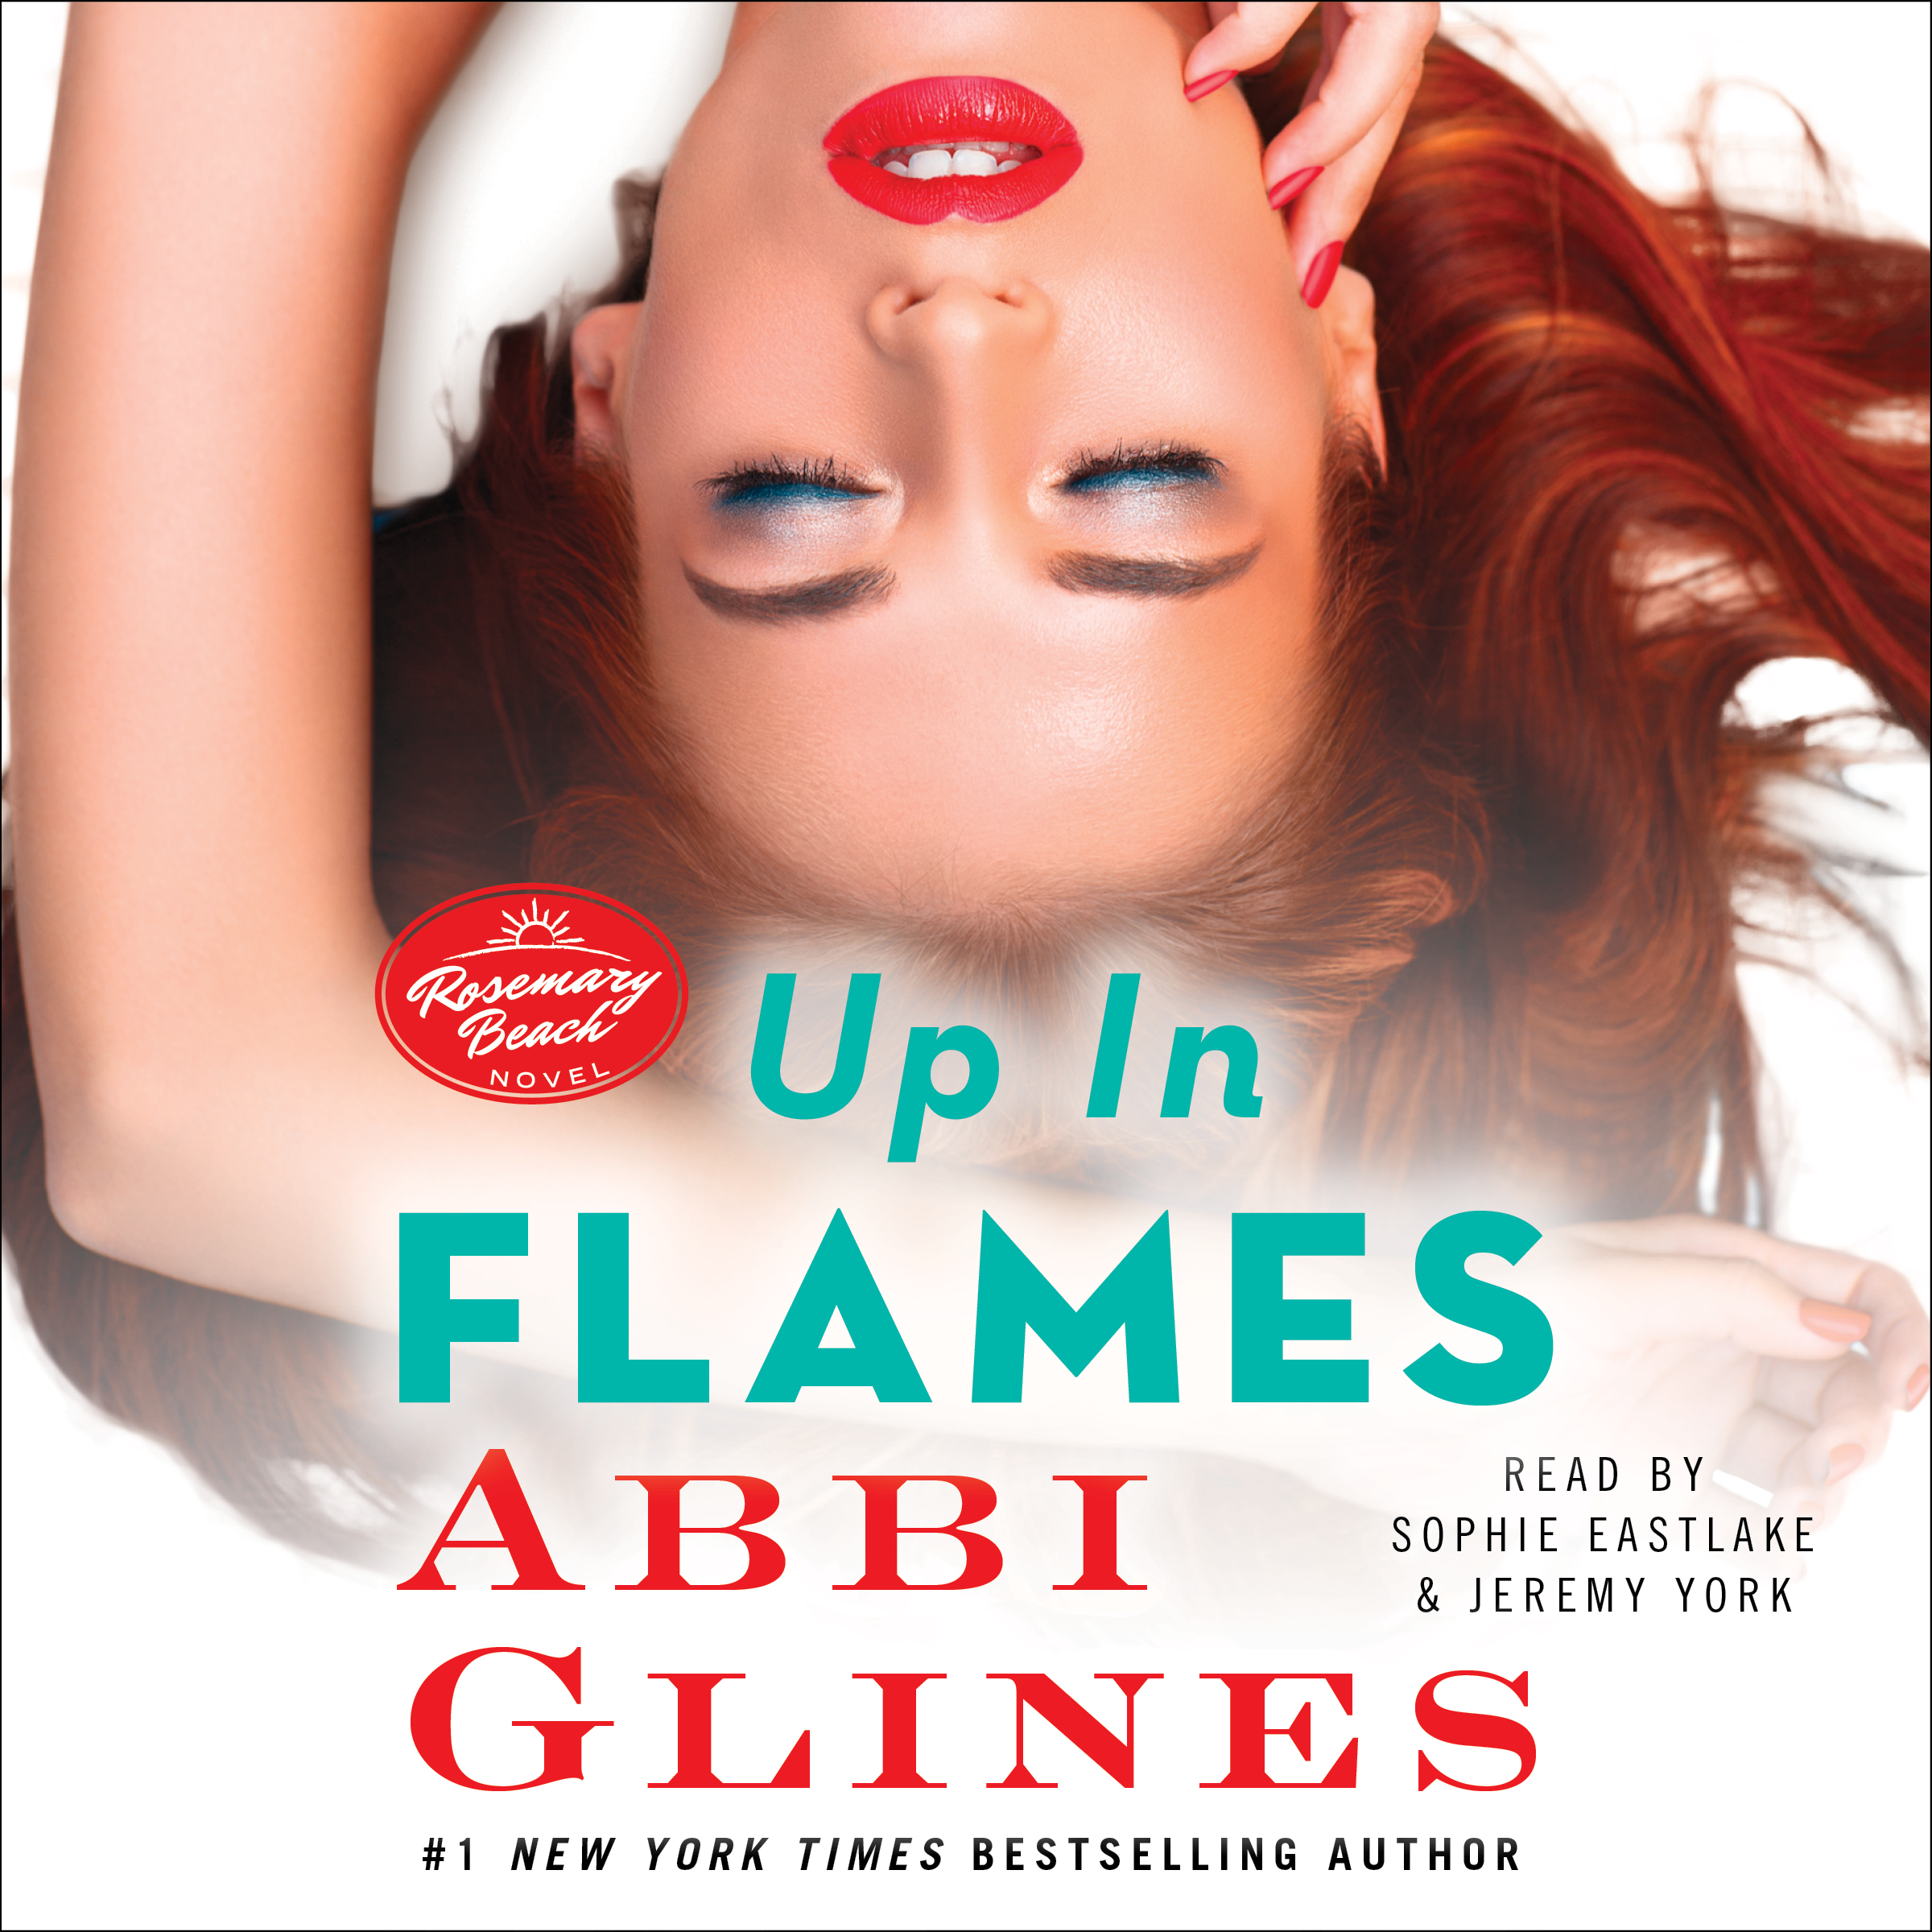 Up in flames 9781442389113 hr